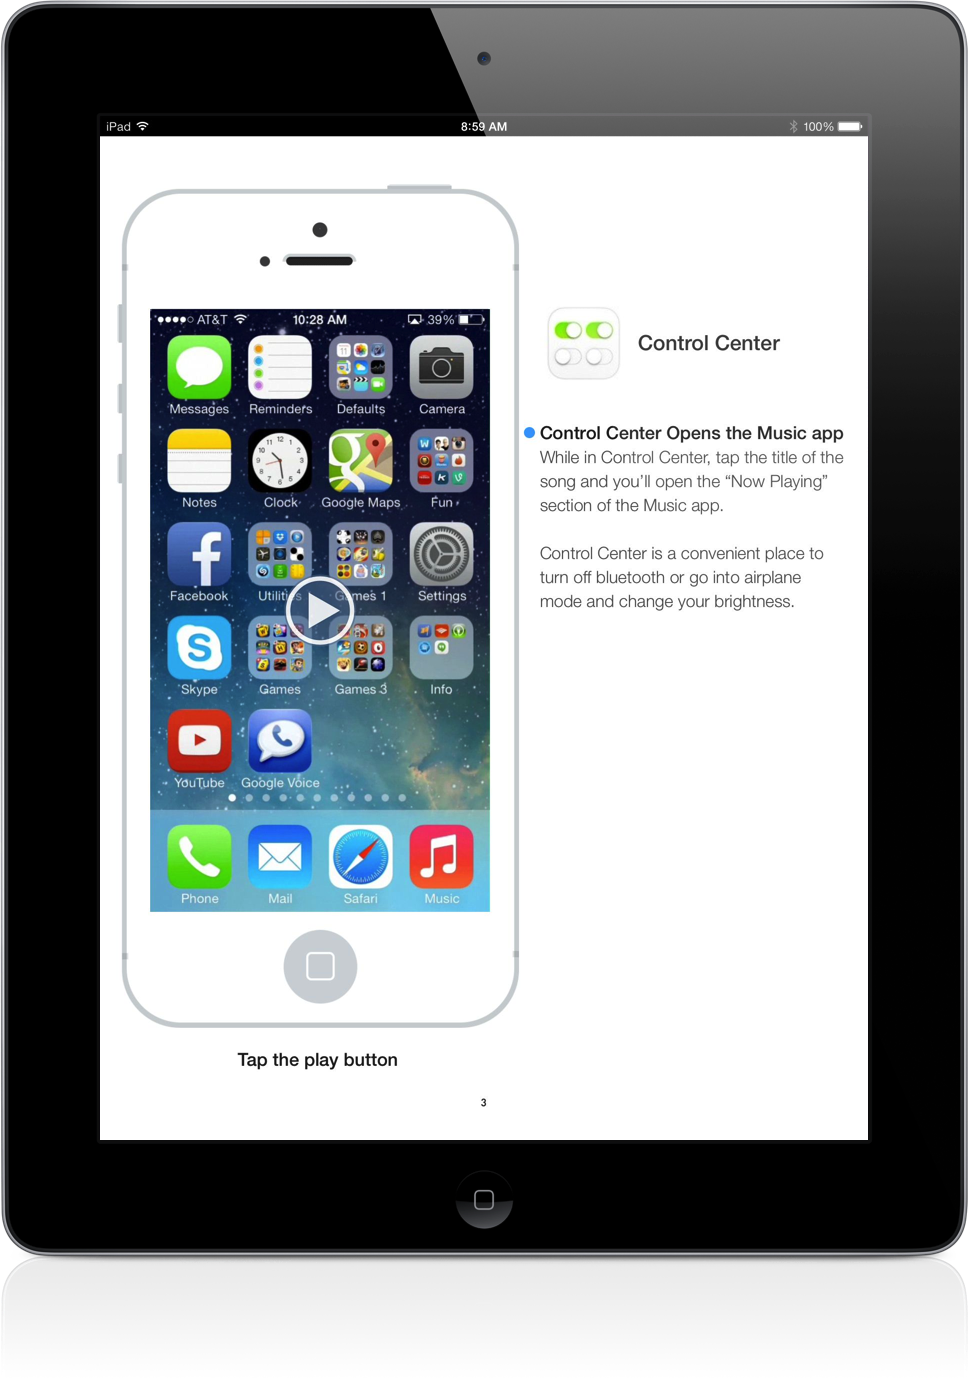 Must Read: '70 iOS 7 And Legacy Tips, Tricks & Secrets'